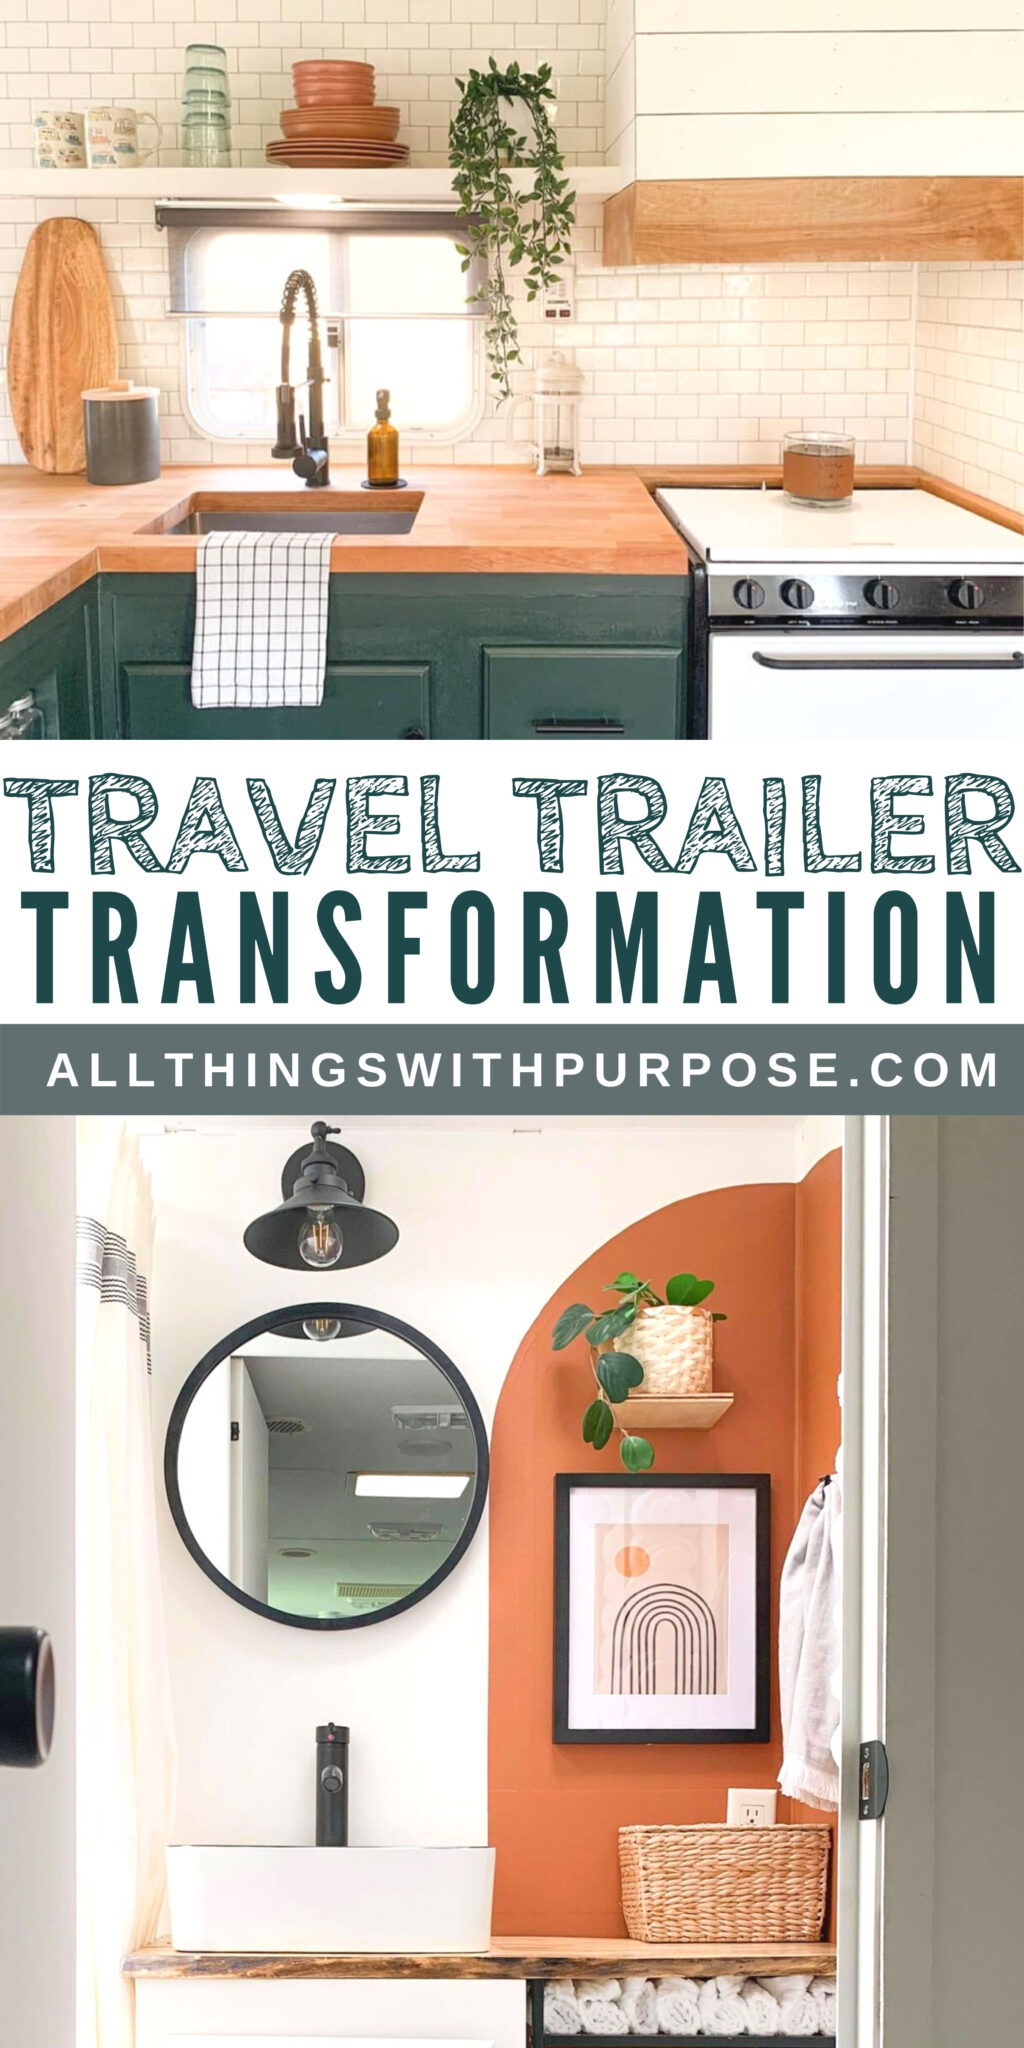 2002 Fleetwood Wilderness Travel Trailer Transformation All Things with Purpose Sarah Lemp 22